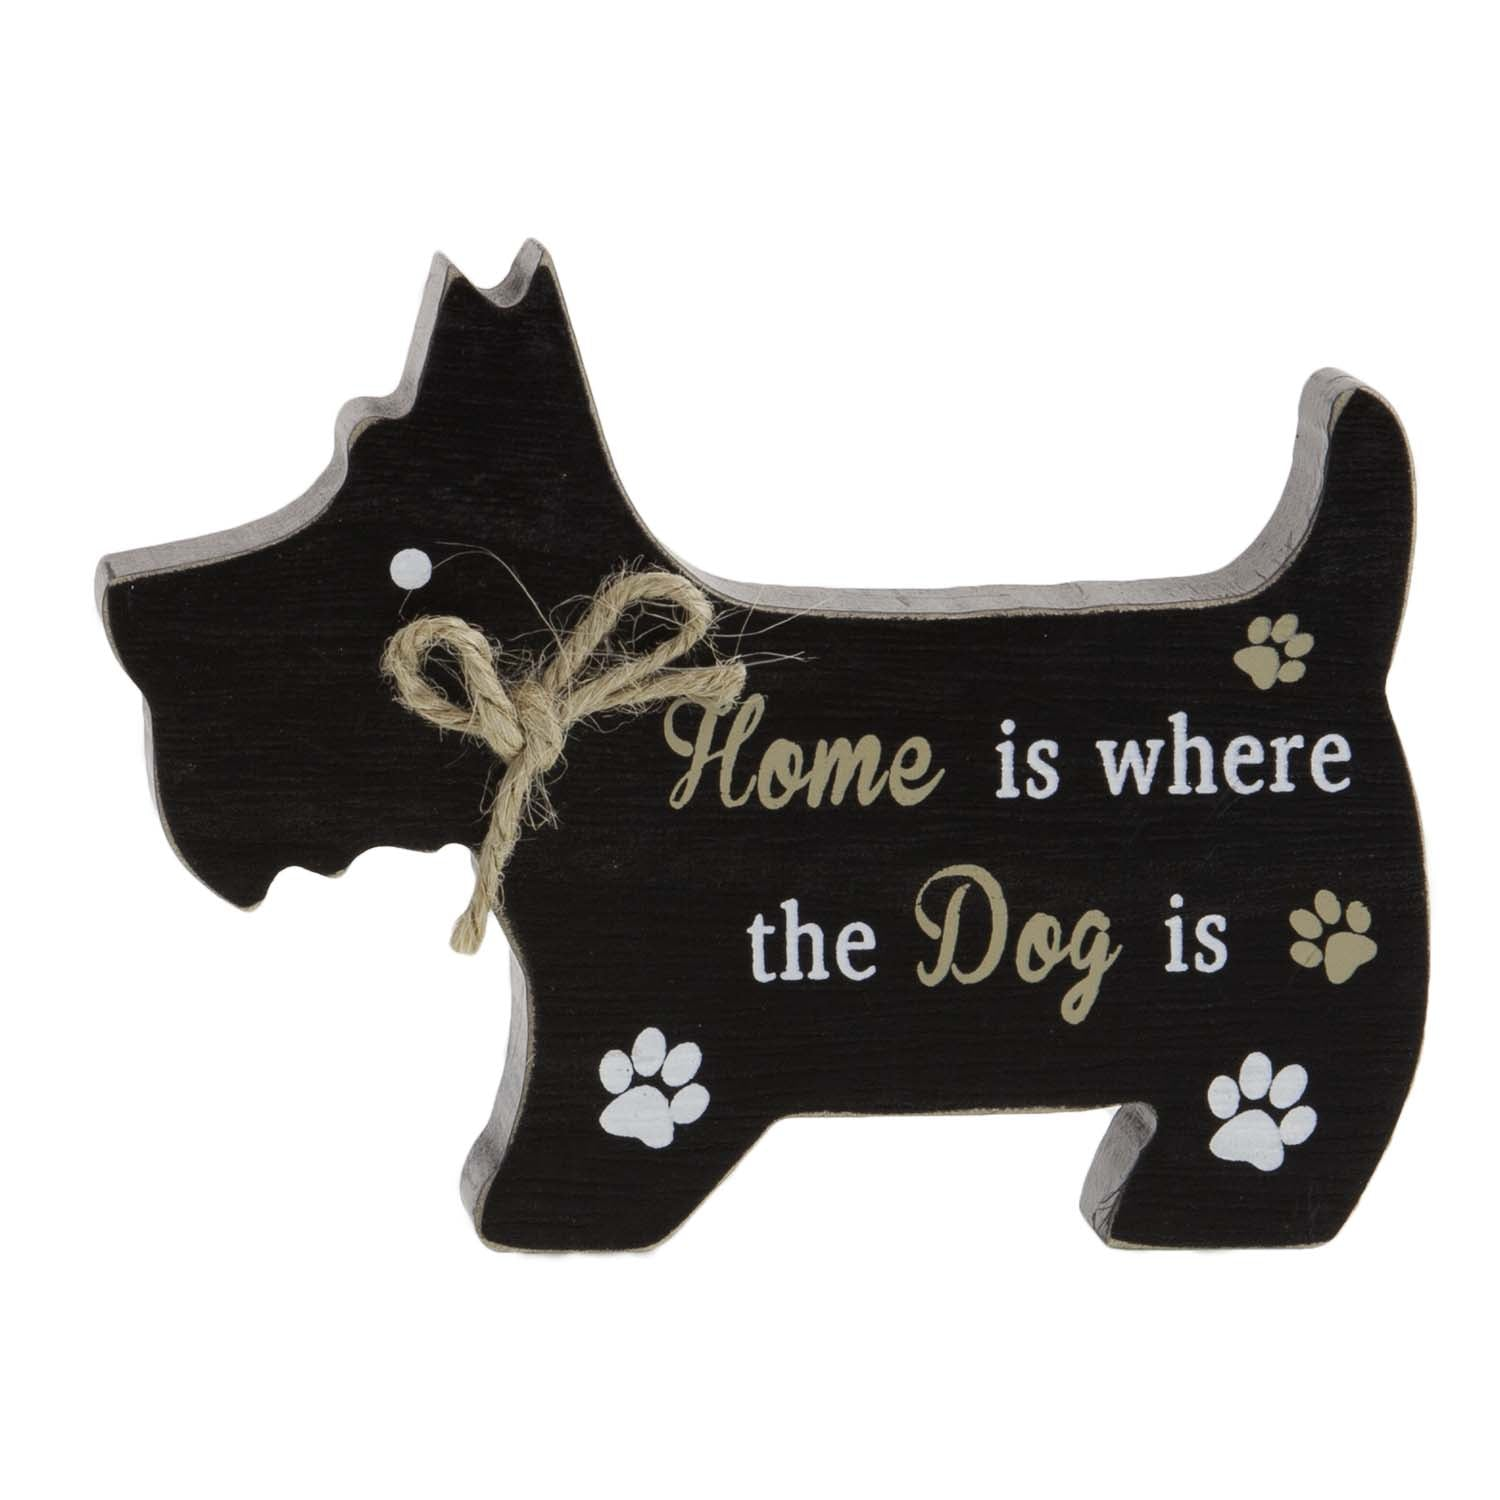 Dog Lover Gifts available at Dog Krazy Gifts – Scottie Dog Standing Dog Sign, Home is Where the Dog is, Just Part Of Our Collection Of Signs Available At www.dogkrazygifts.co.uk